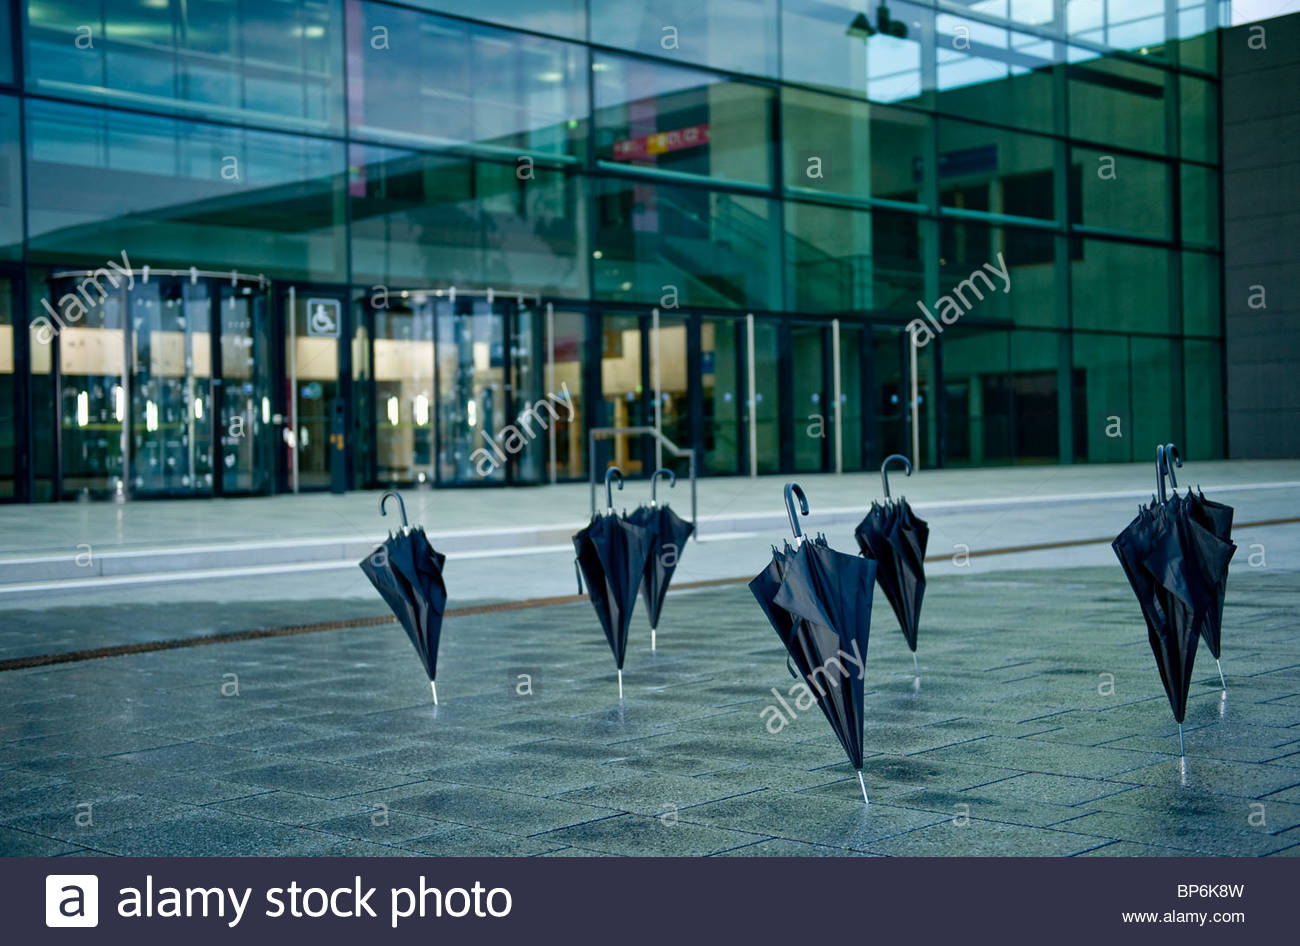 Black umbrellas standing upright outside a modern office building - Stock Image